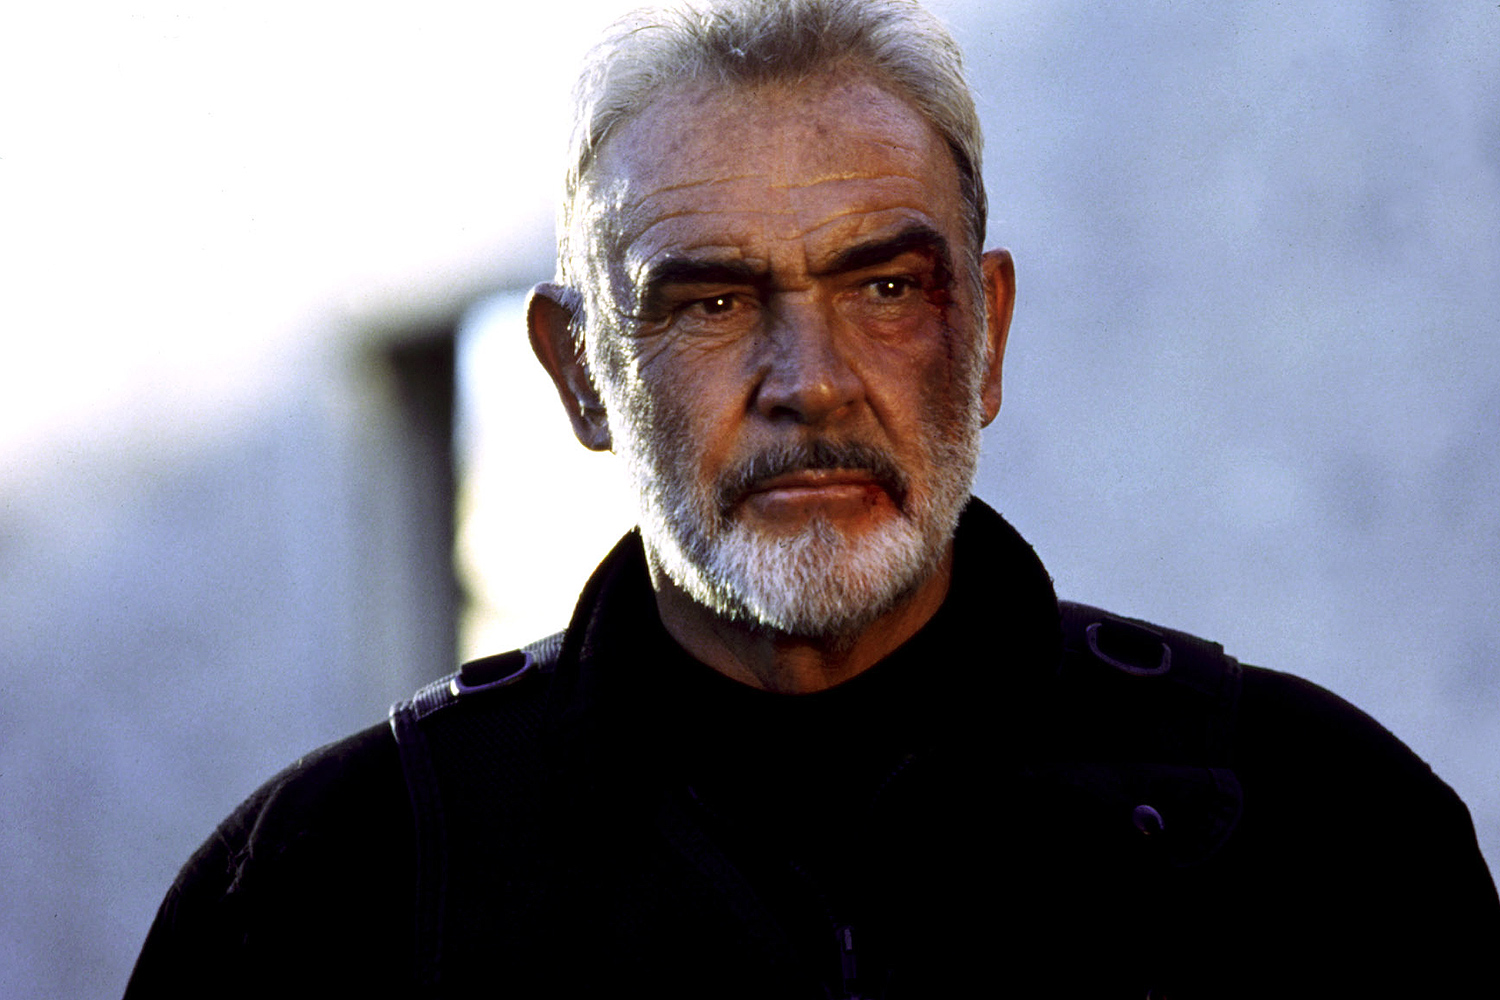 Sean Connery The Rock